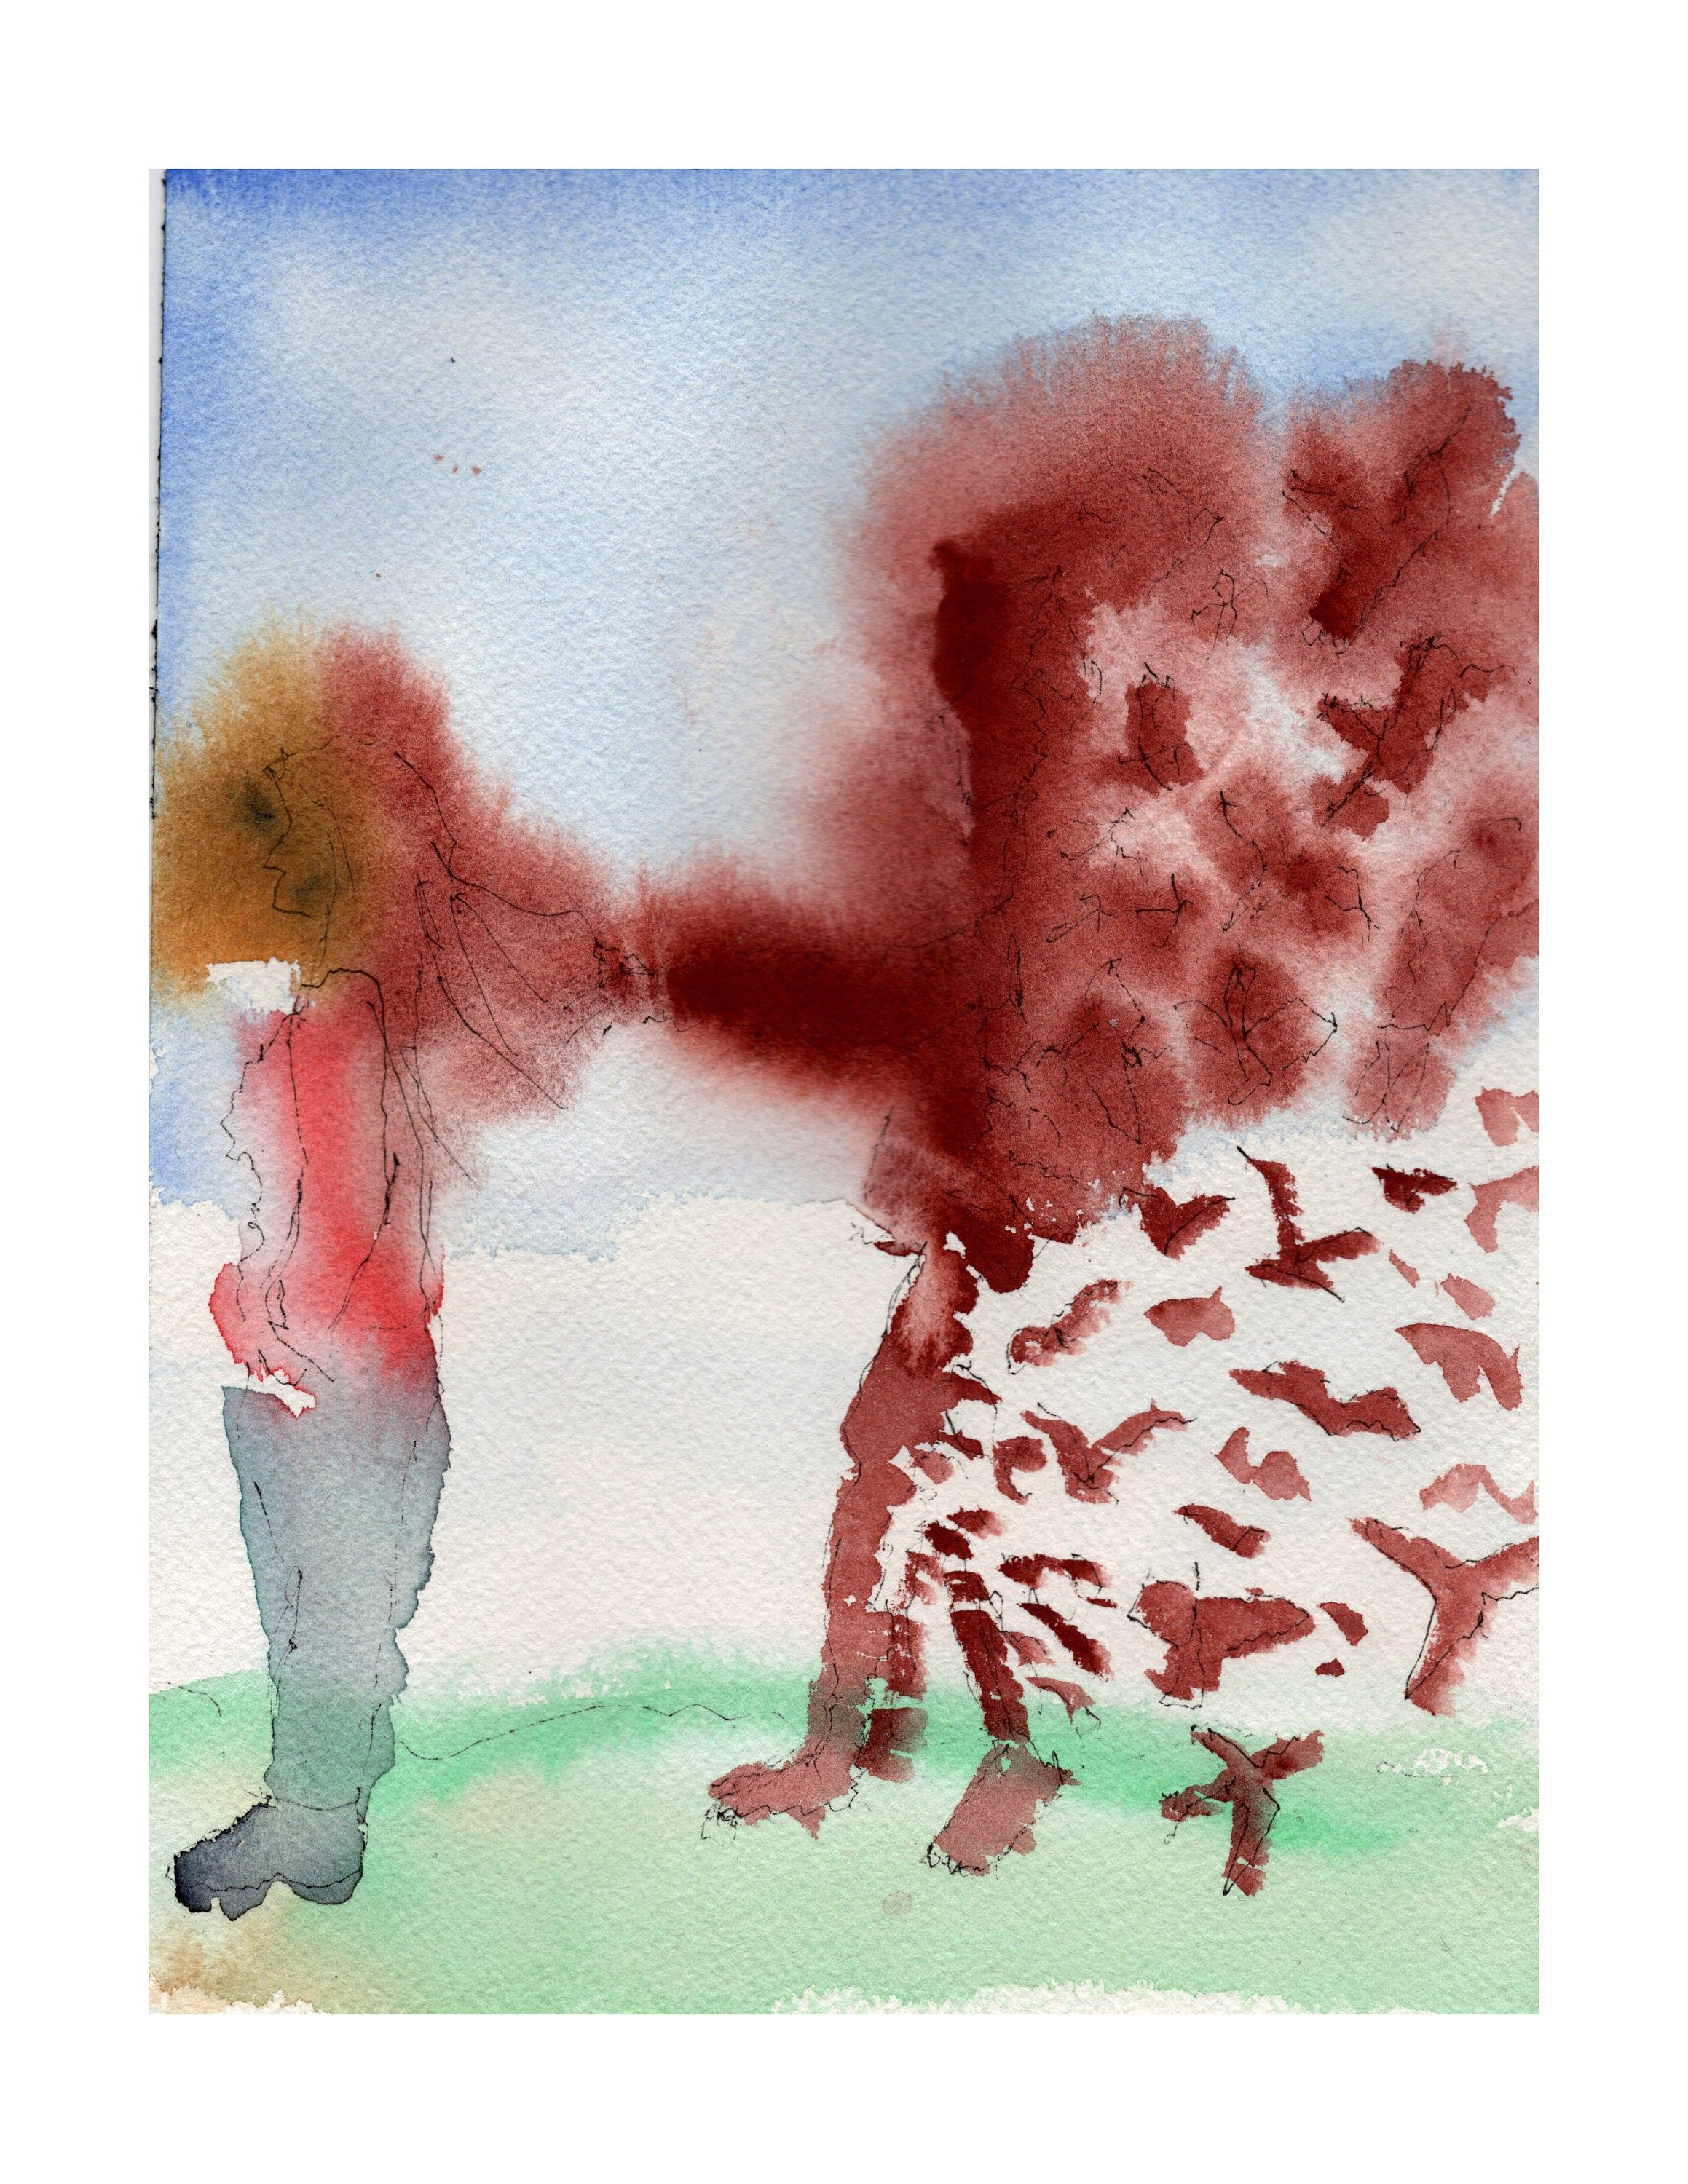 Original Signed Watercolor Painting The Breakup Etsy Painting Watercolor Paintings Watercolor